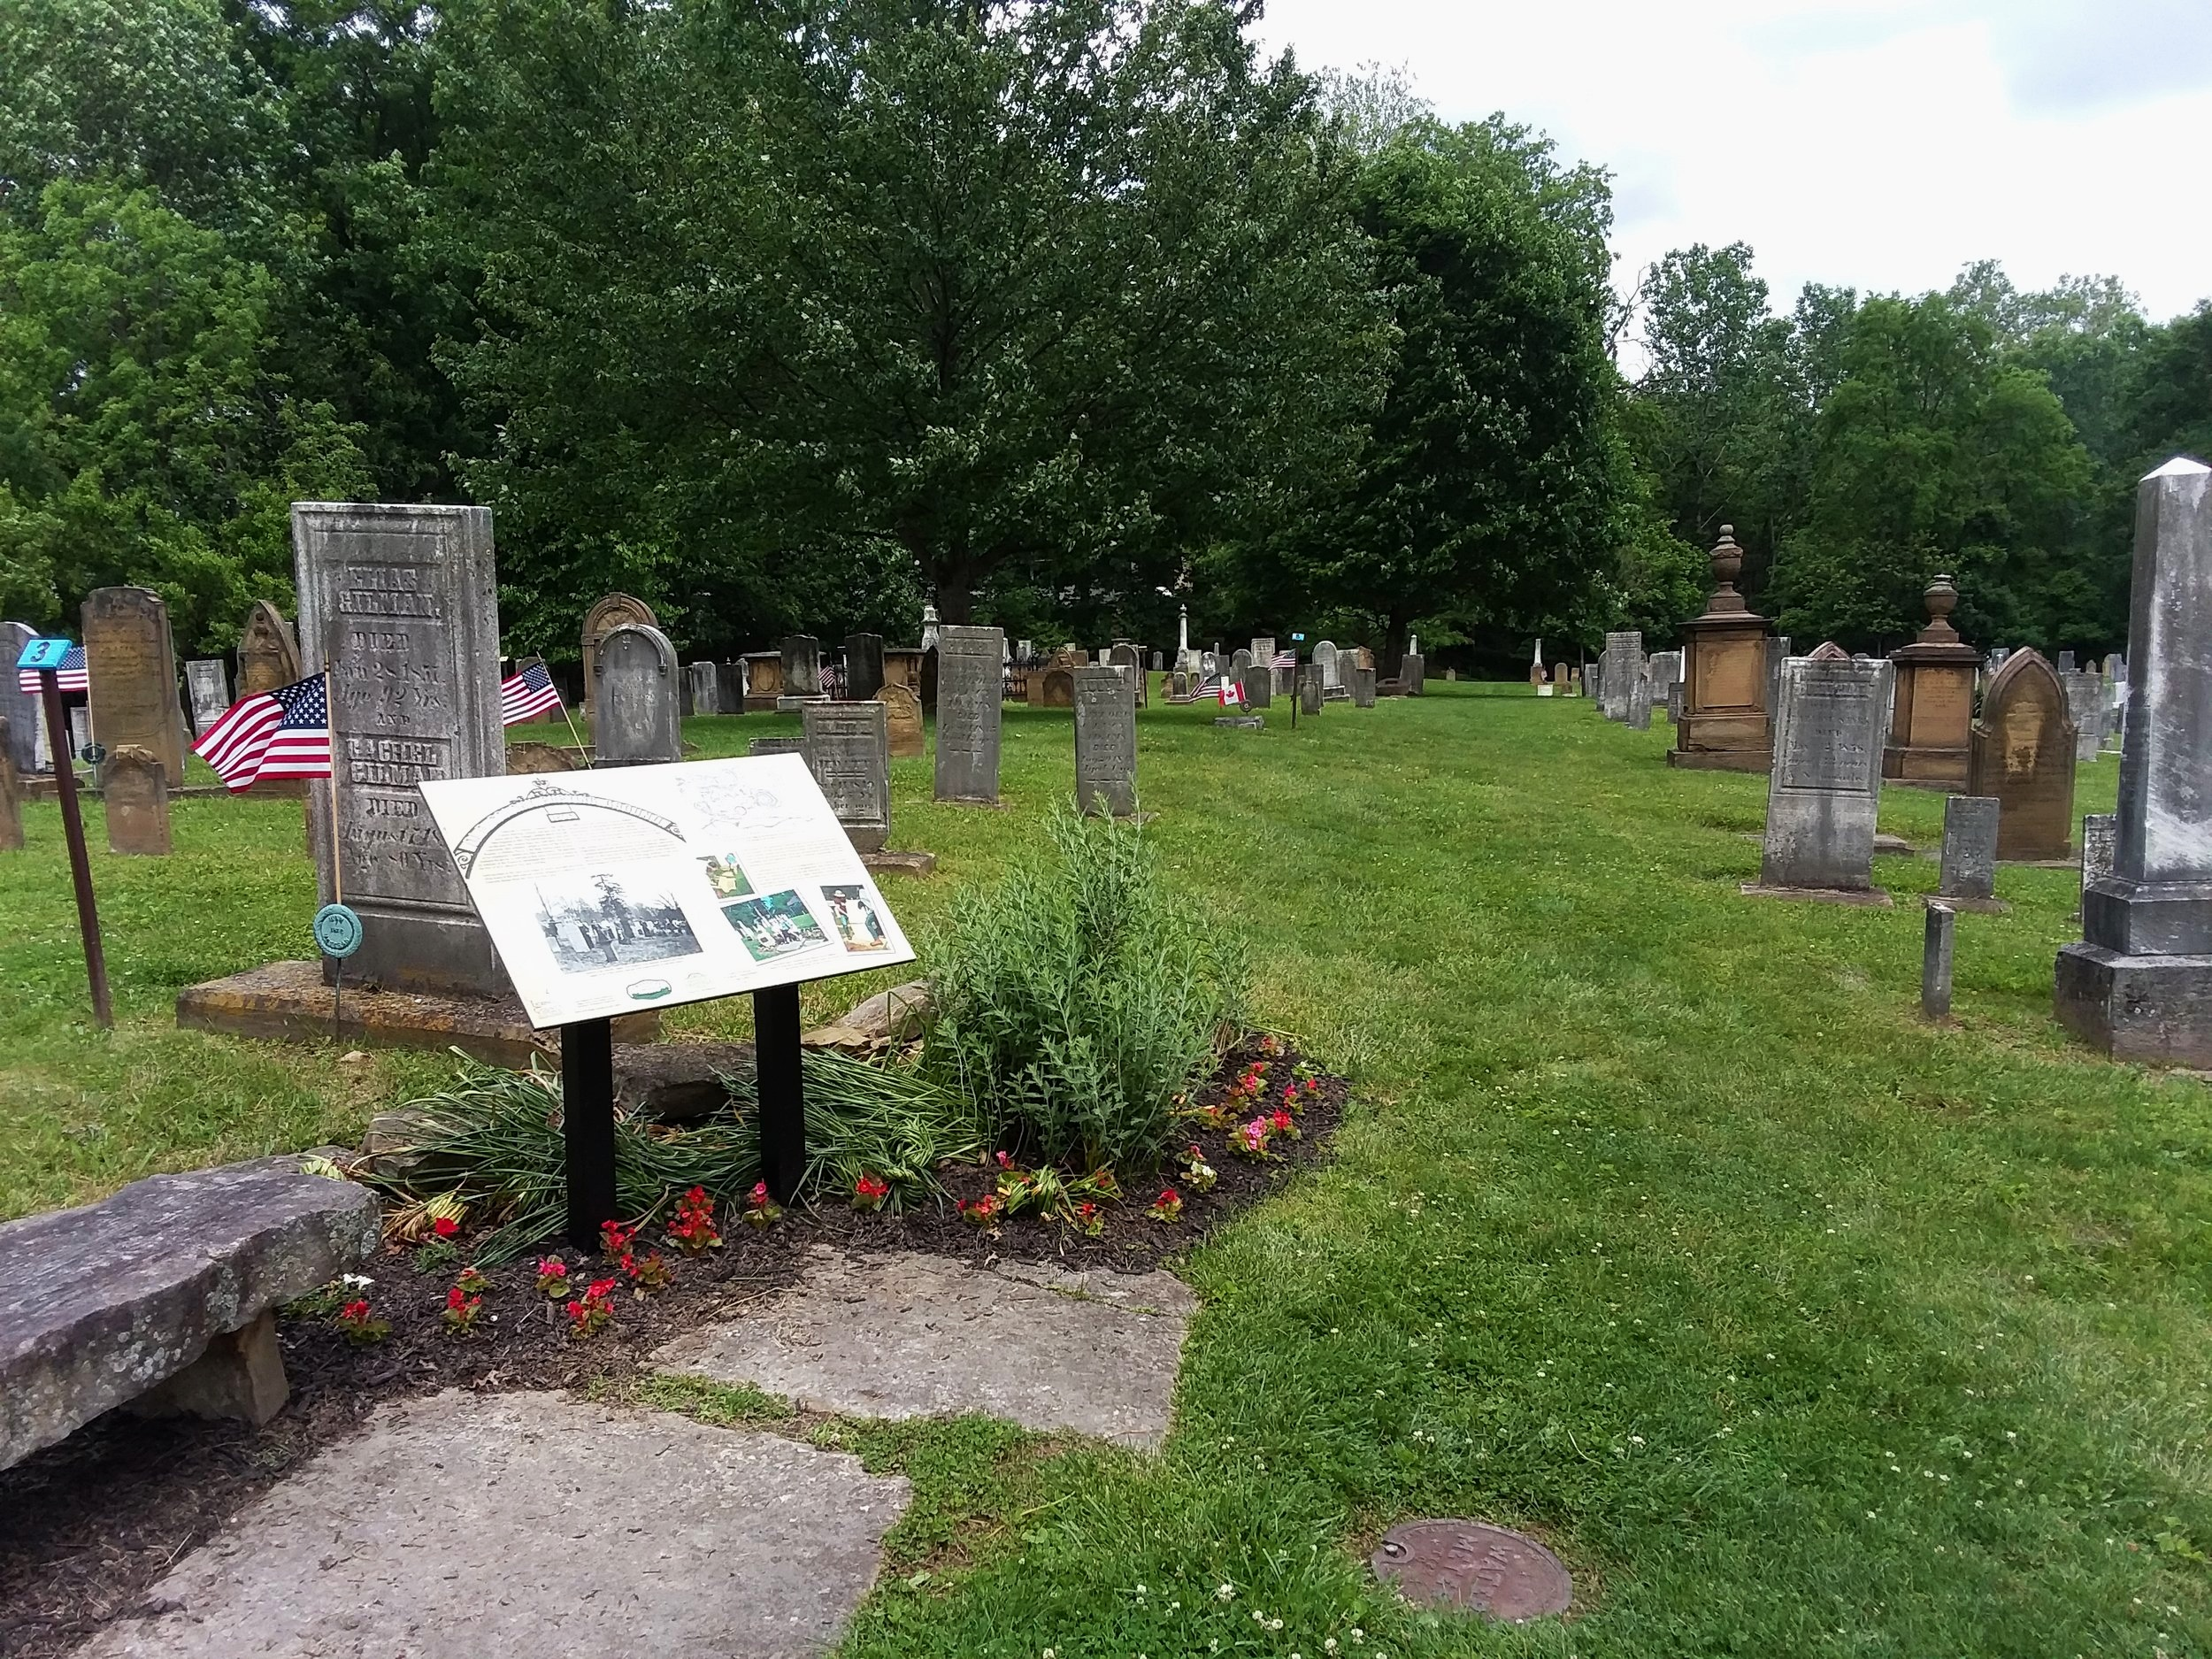 Tour the Old Colony Burying Ground on May 4: tours every half-hour from 2:00-3:30.